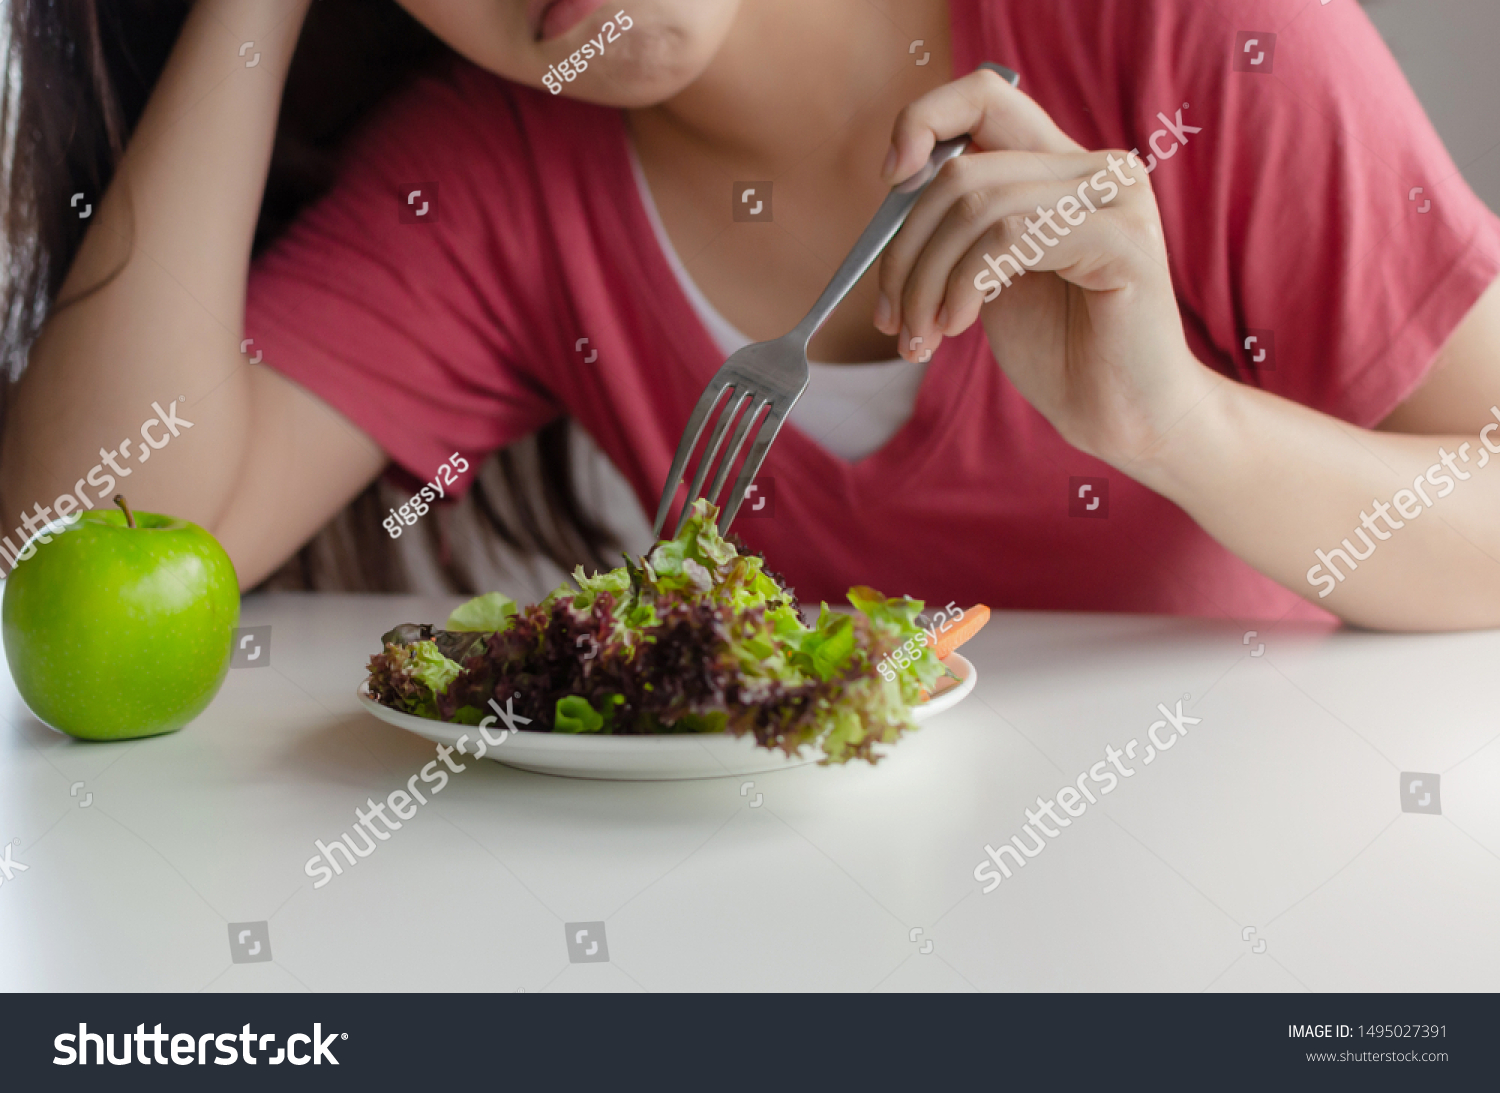 Diet. asian young pretty woman bored emotion and refuse for eating fresh green vegetables salad on table for good health at home, nutrition, weight loss, lifestyle, healthy food and dieting concept #1495027391